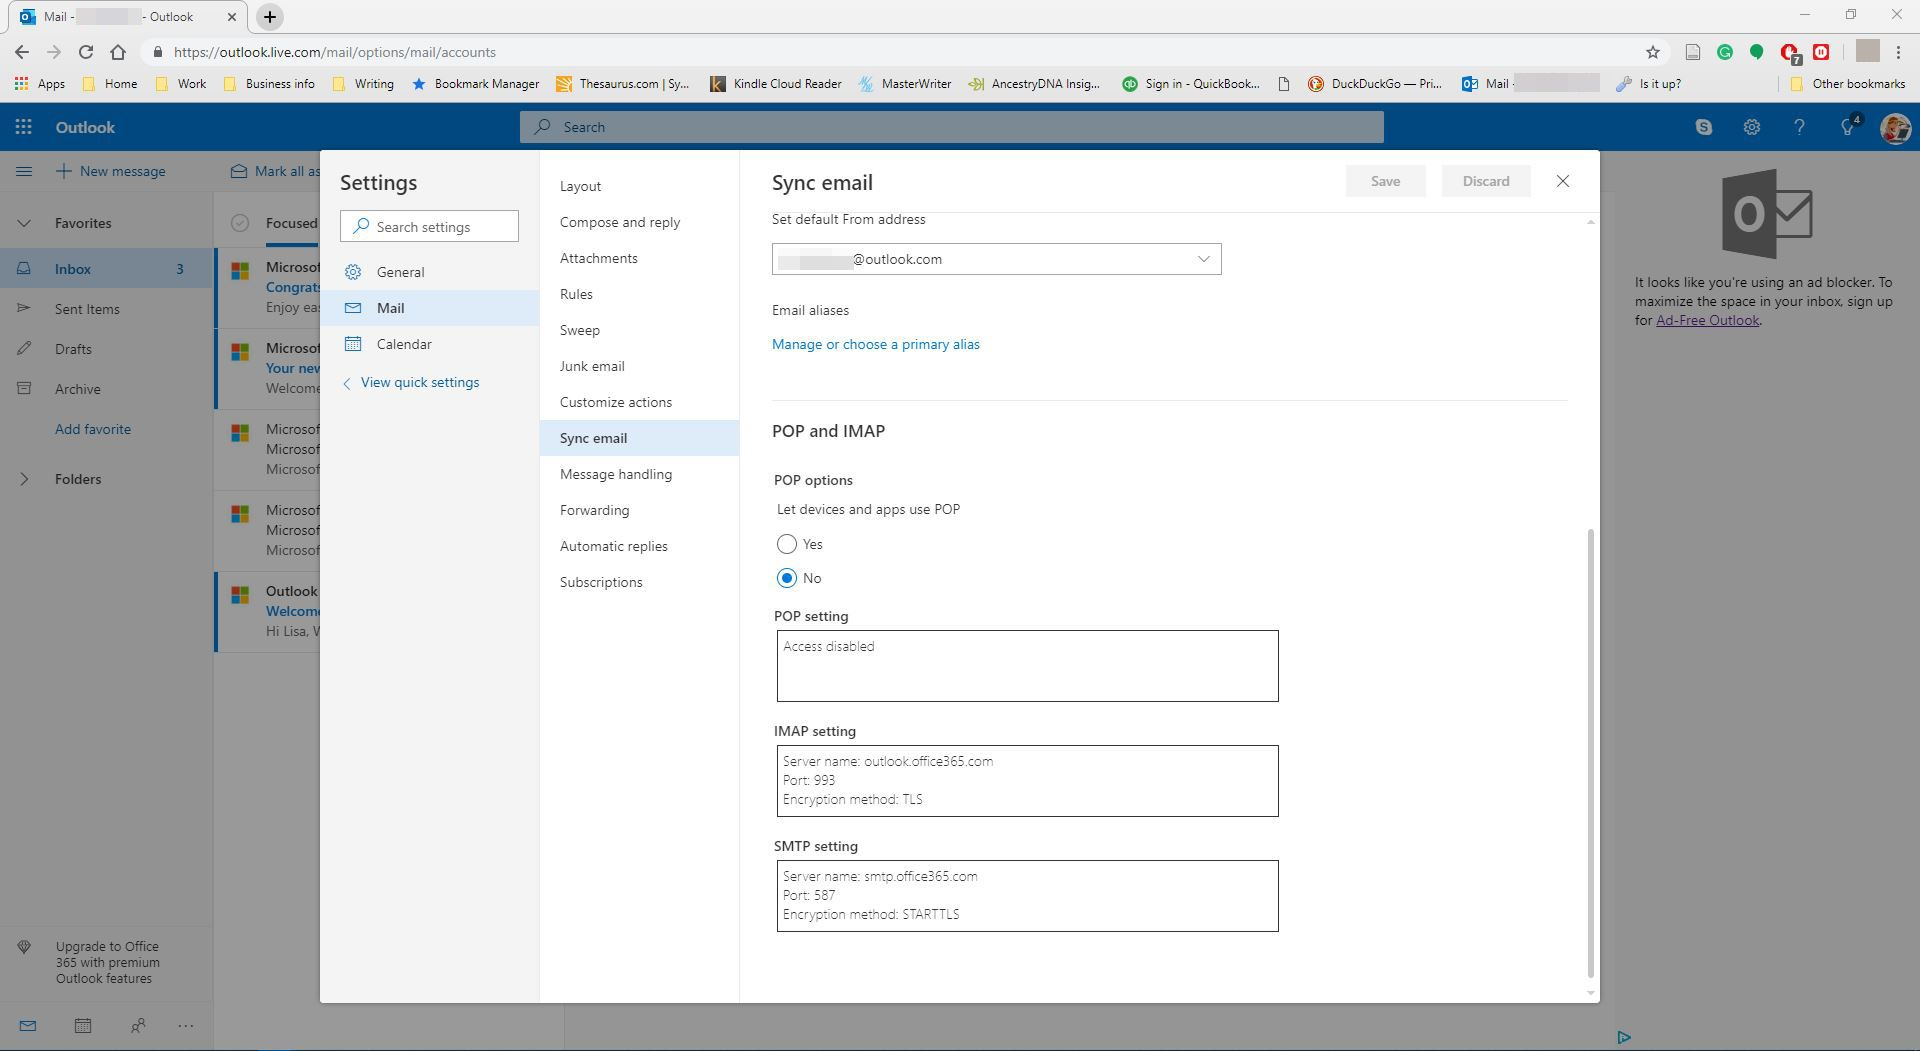 Viewing the sync mail setting in Outlook.com.